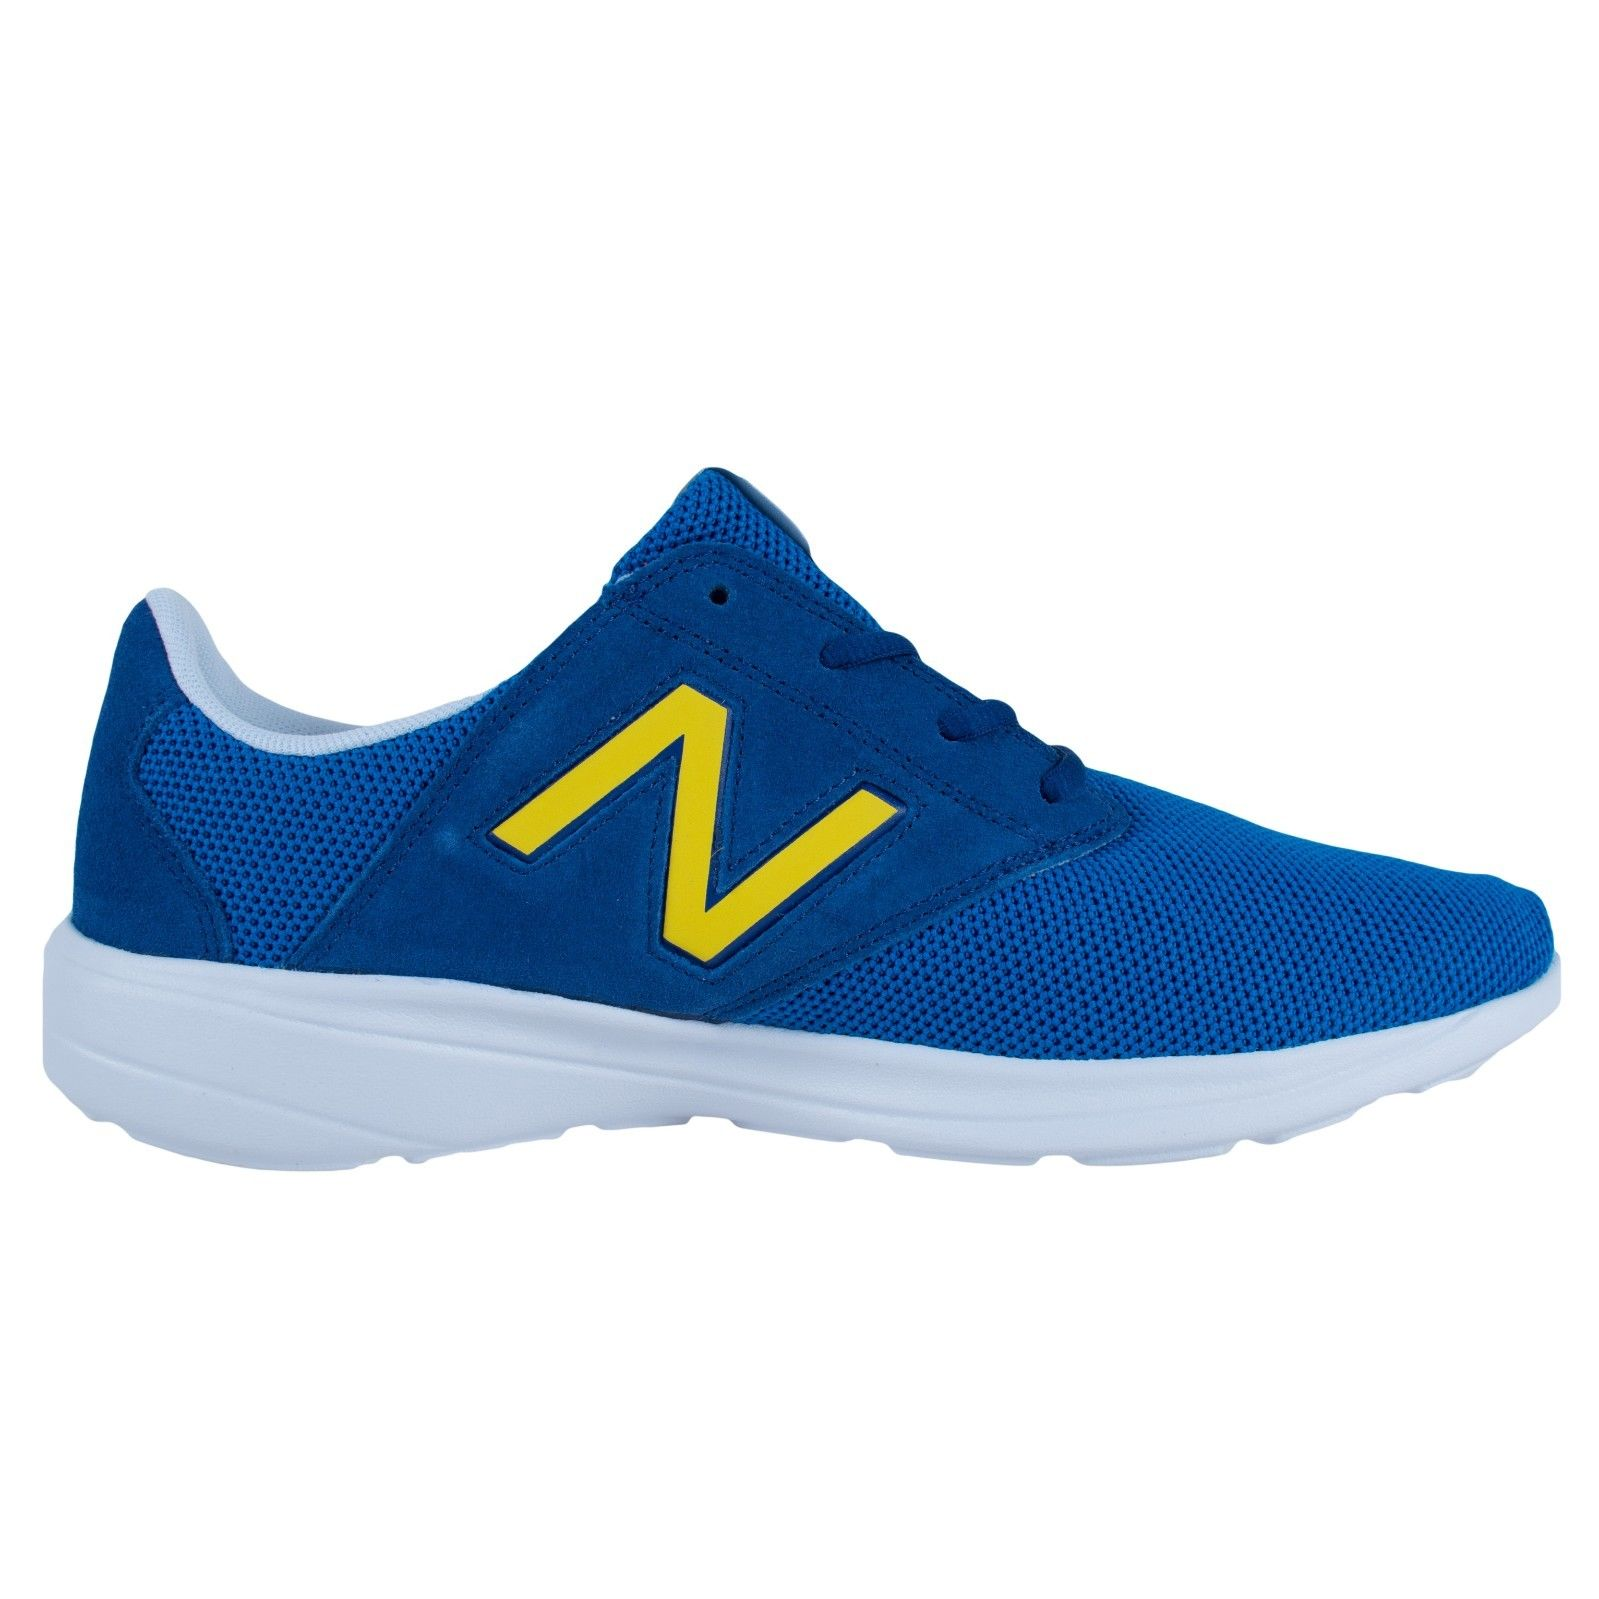 New Balance 1320 amarillo